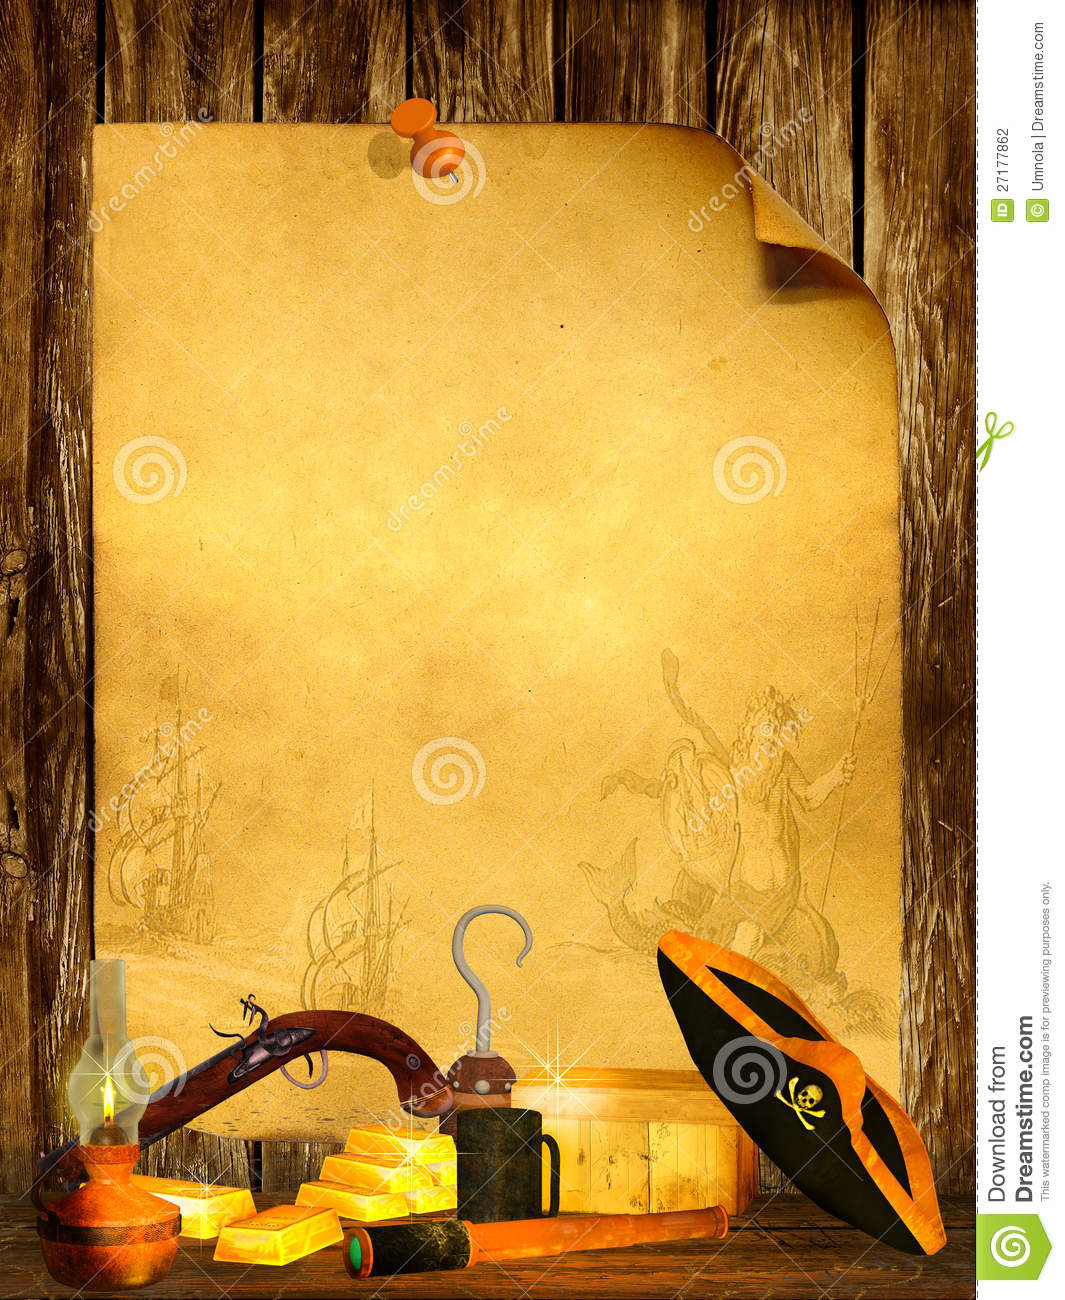 pirate background stock illustration  image of illustration